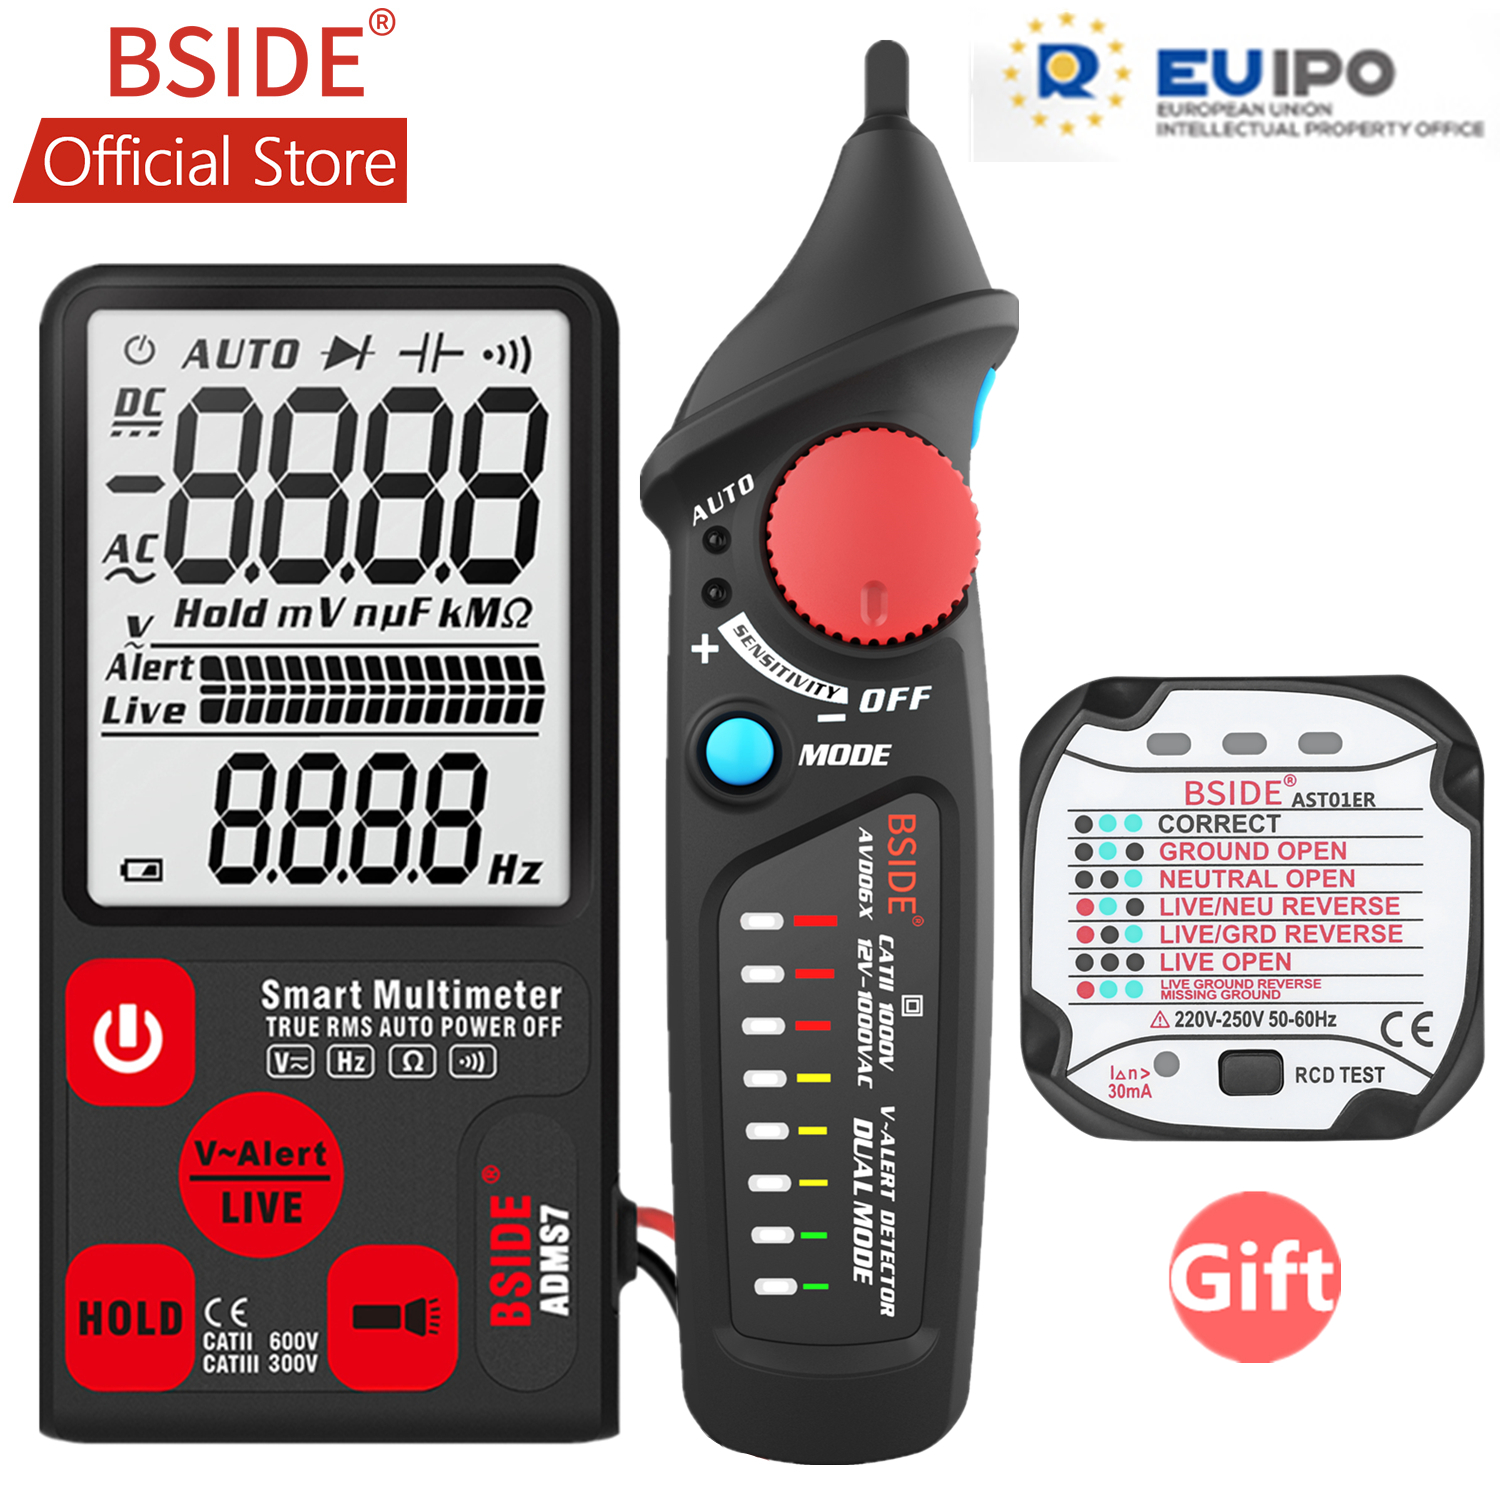 BSIDE ADMS7 Voltage Tester 3.5'' Large LCD Digital Smart Multimeter 3-Line Display TRMS 6000 Counts DMM with Analog Bargraph